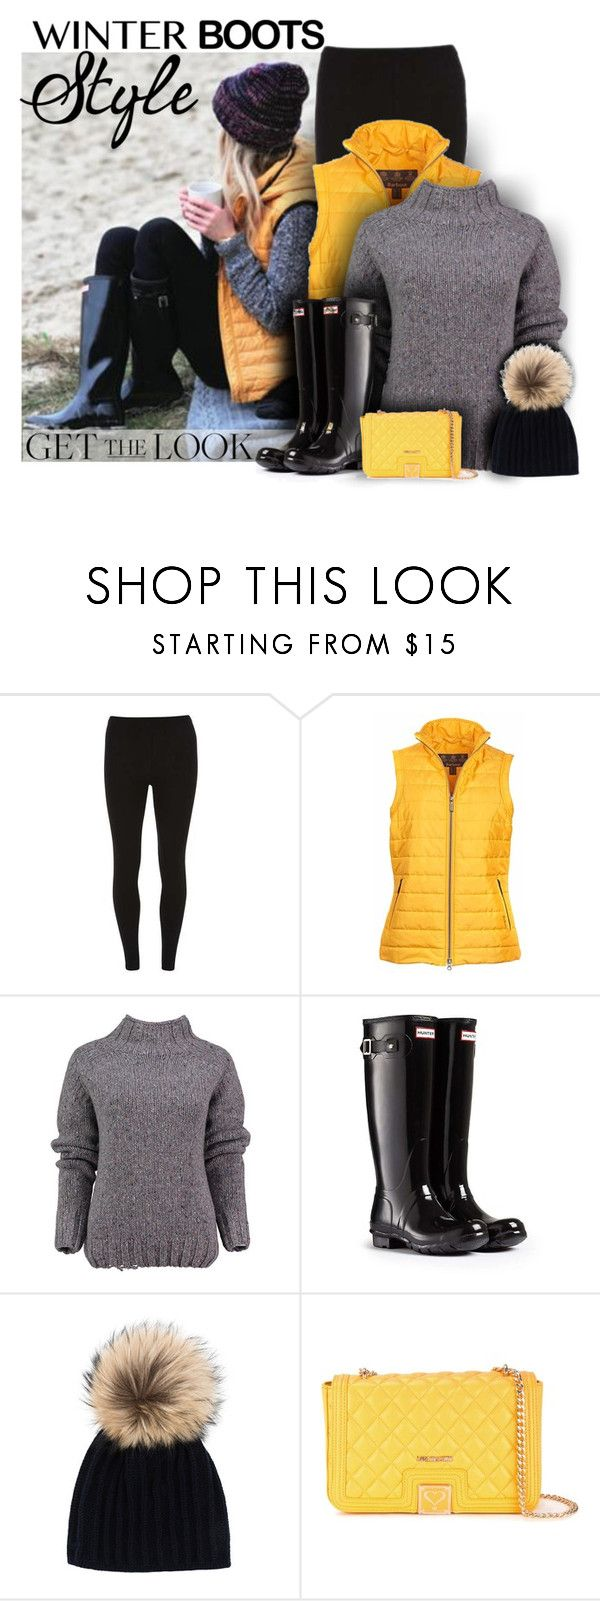 """""""So Cozy: Winter Boots"""" by cindycook10 ❤ liked on Polyvore featuring Dorothy Perkins, Barbour, Lowie, Hunter, Inverni, Love Moschino, GetTheLook, polyvorecommunity, winterboots and winterstyle"""